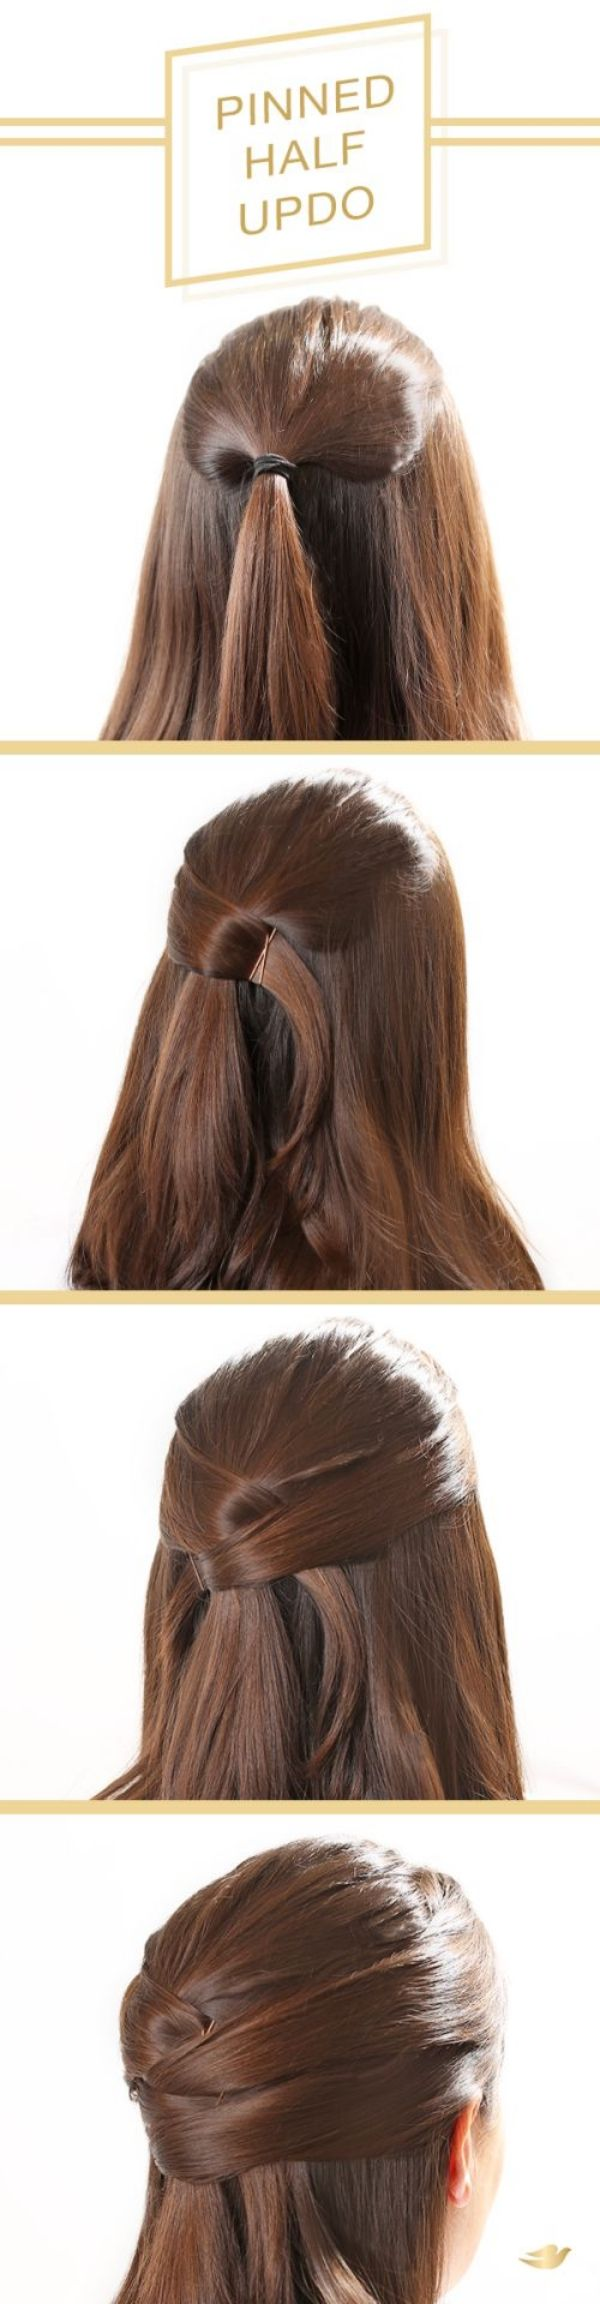 80 Simple Five Minute Hairstyles For Office Women Complete